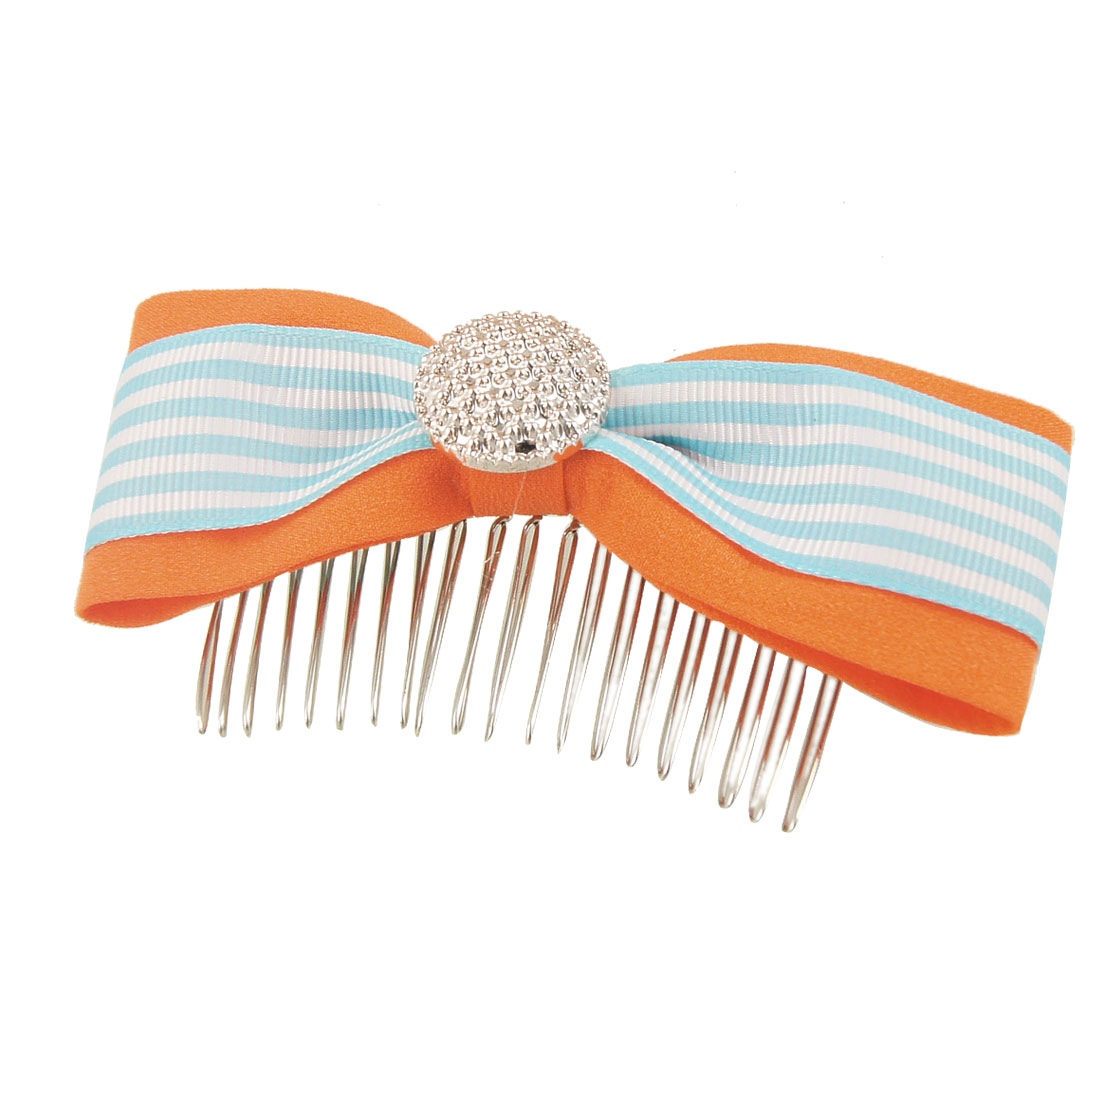 Pale Blue White Striped Patten Orange Polyester Bowknot Hair Comb Clip Clamp